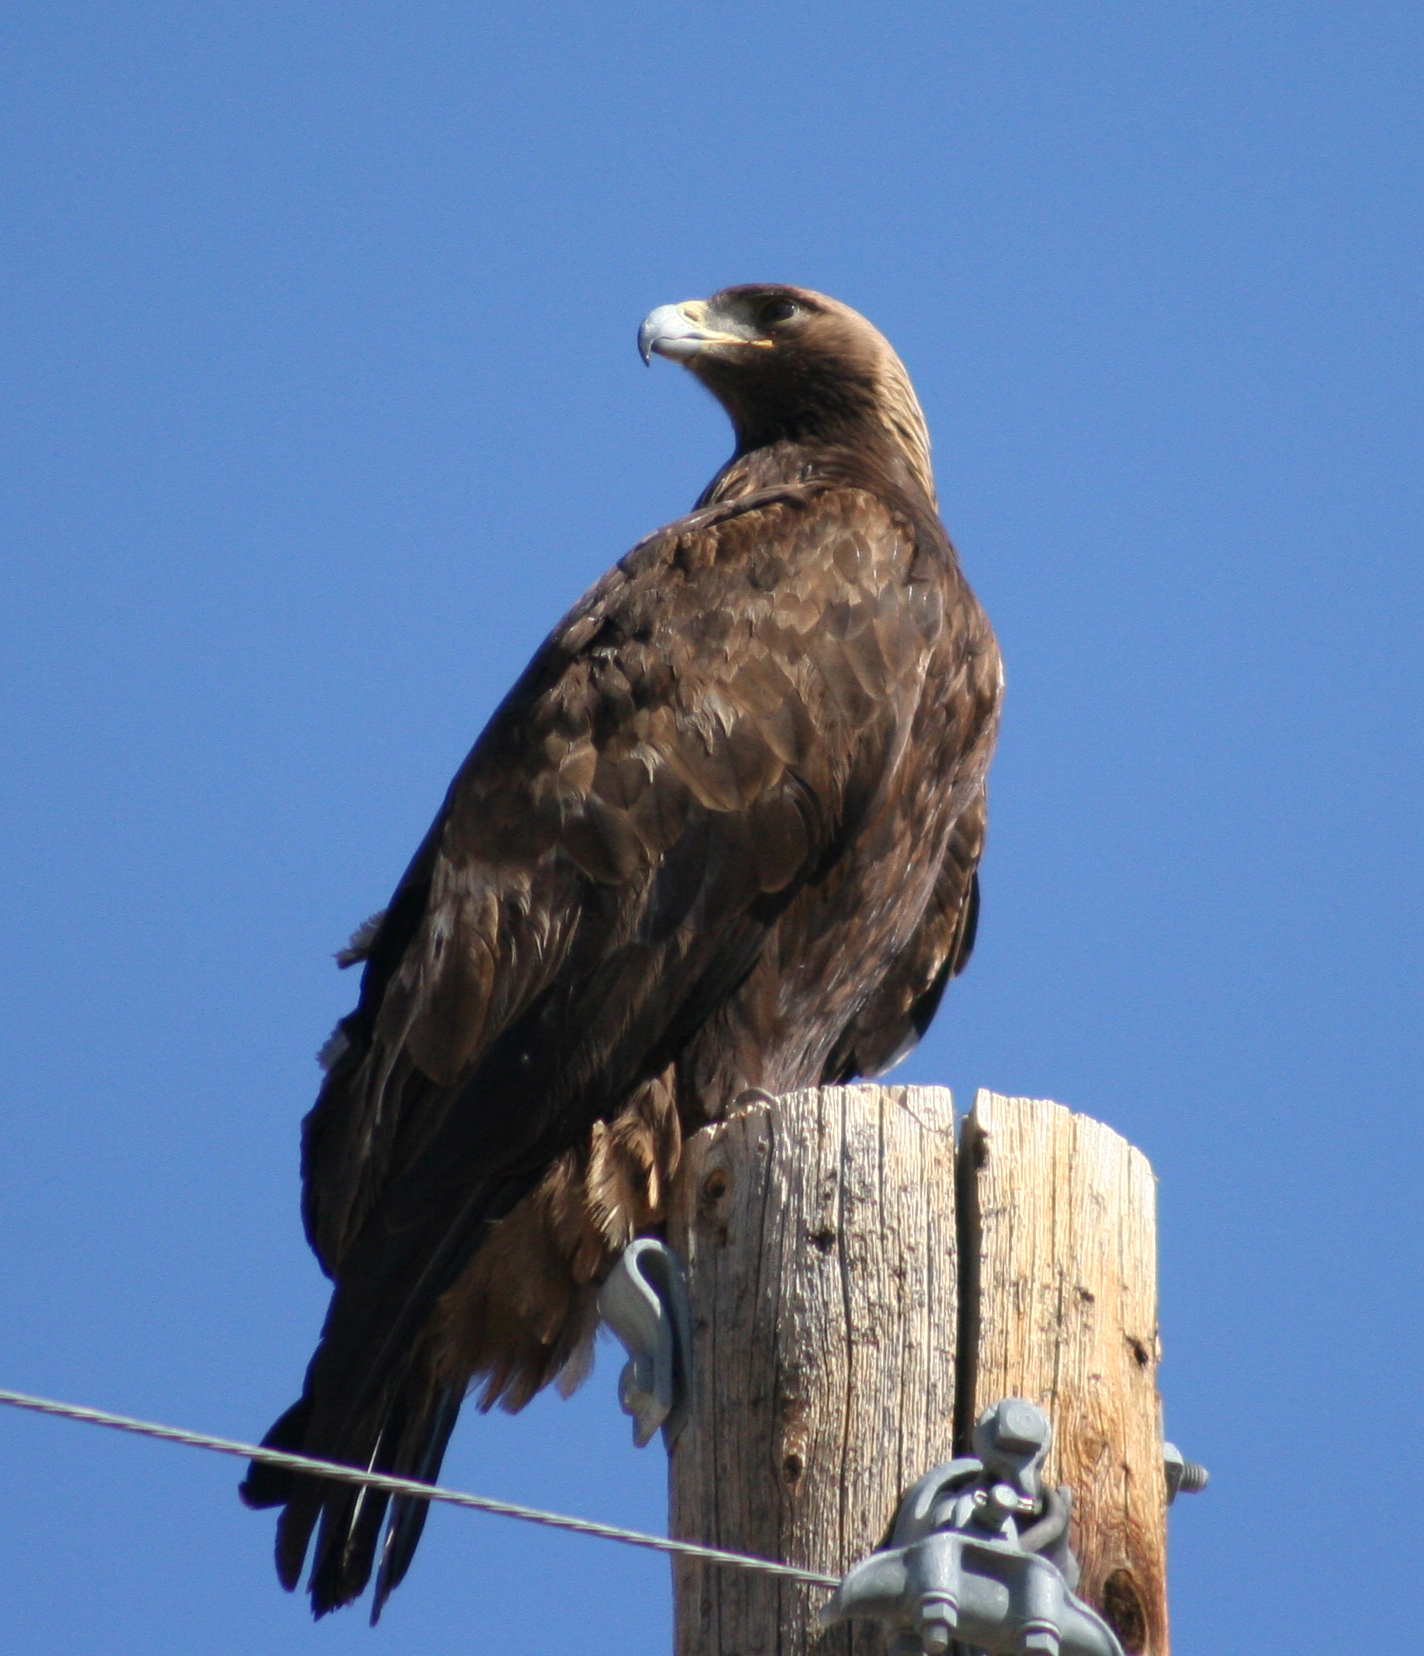 one of the site's golden eagles.